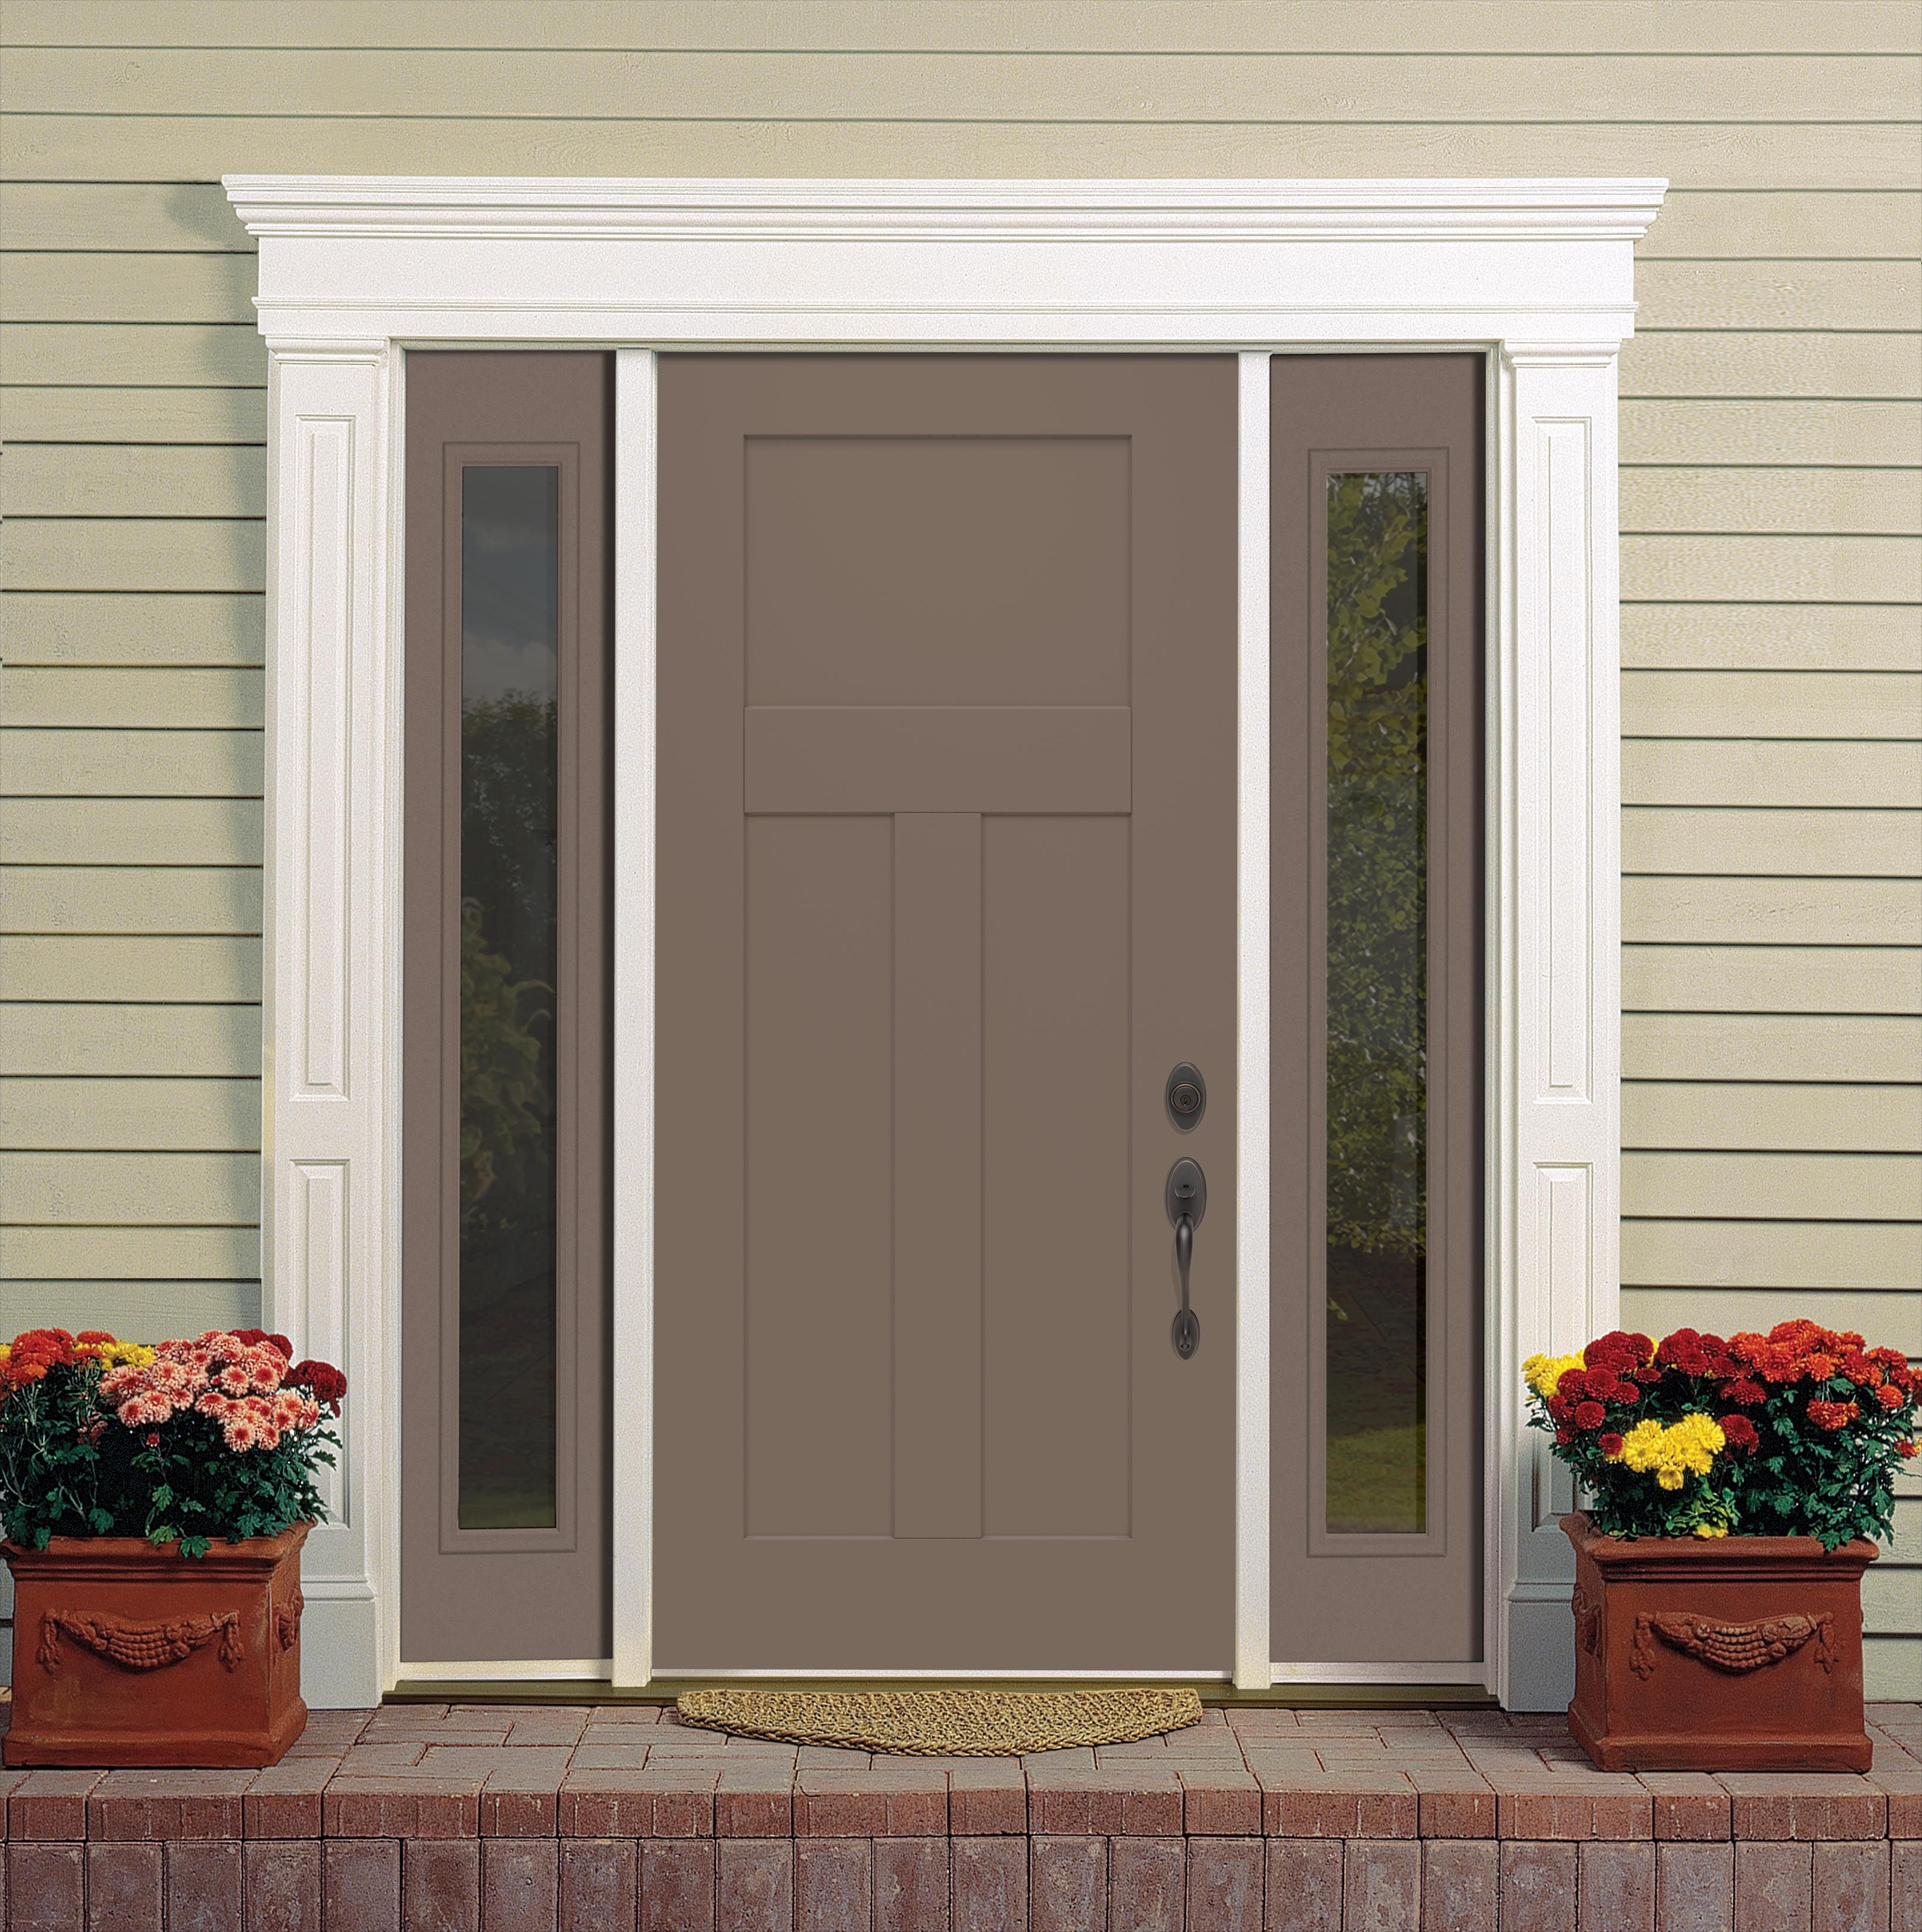 The first #door that blends the security and durability of steel with stylish craftsman design.